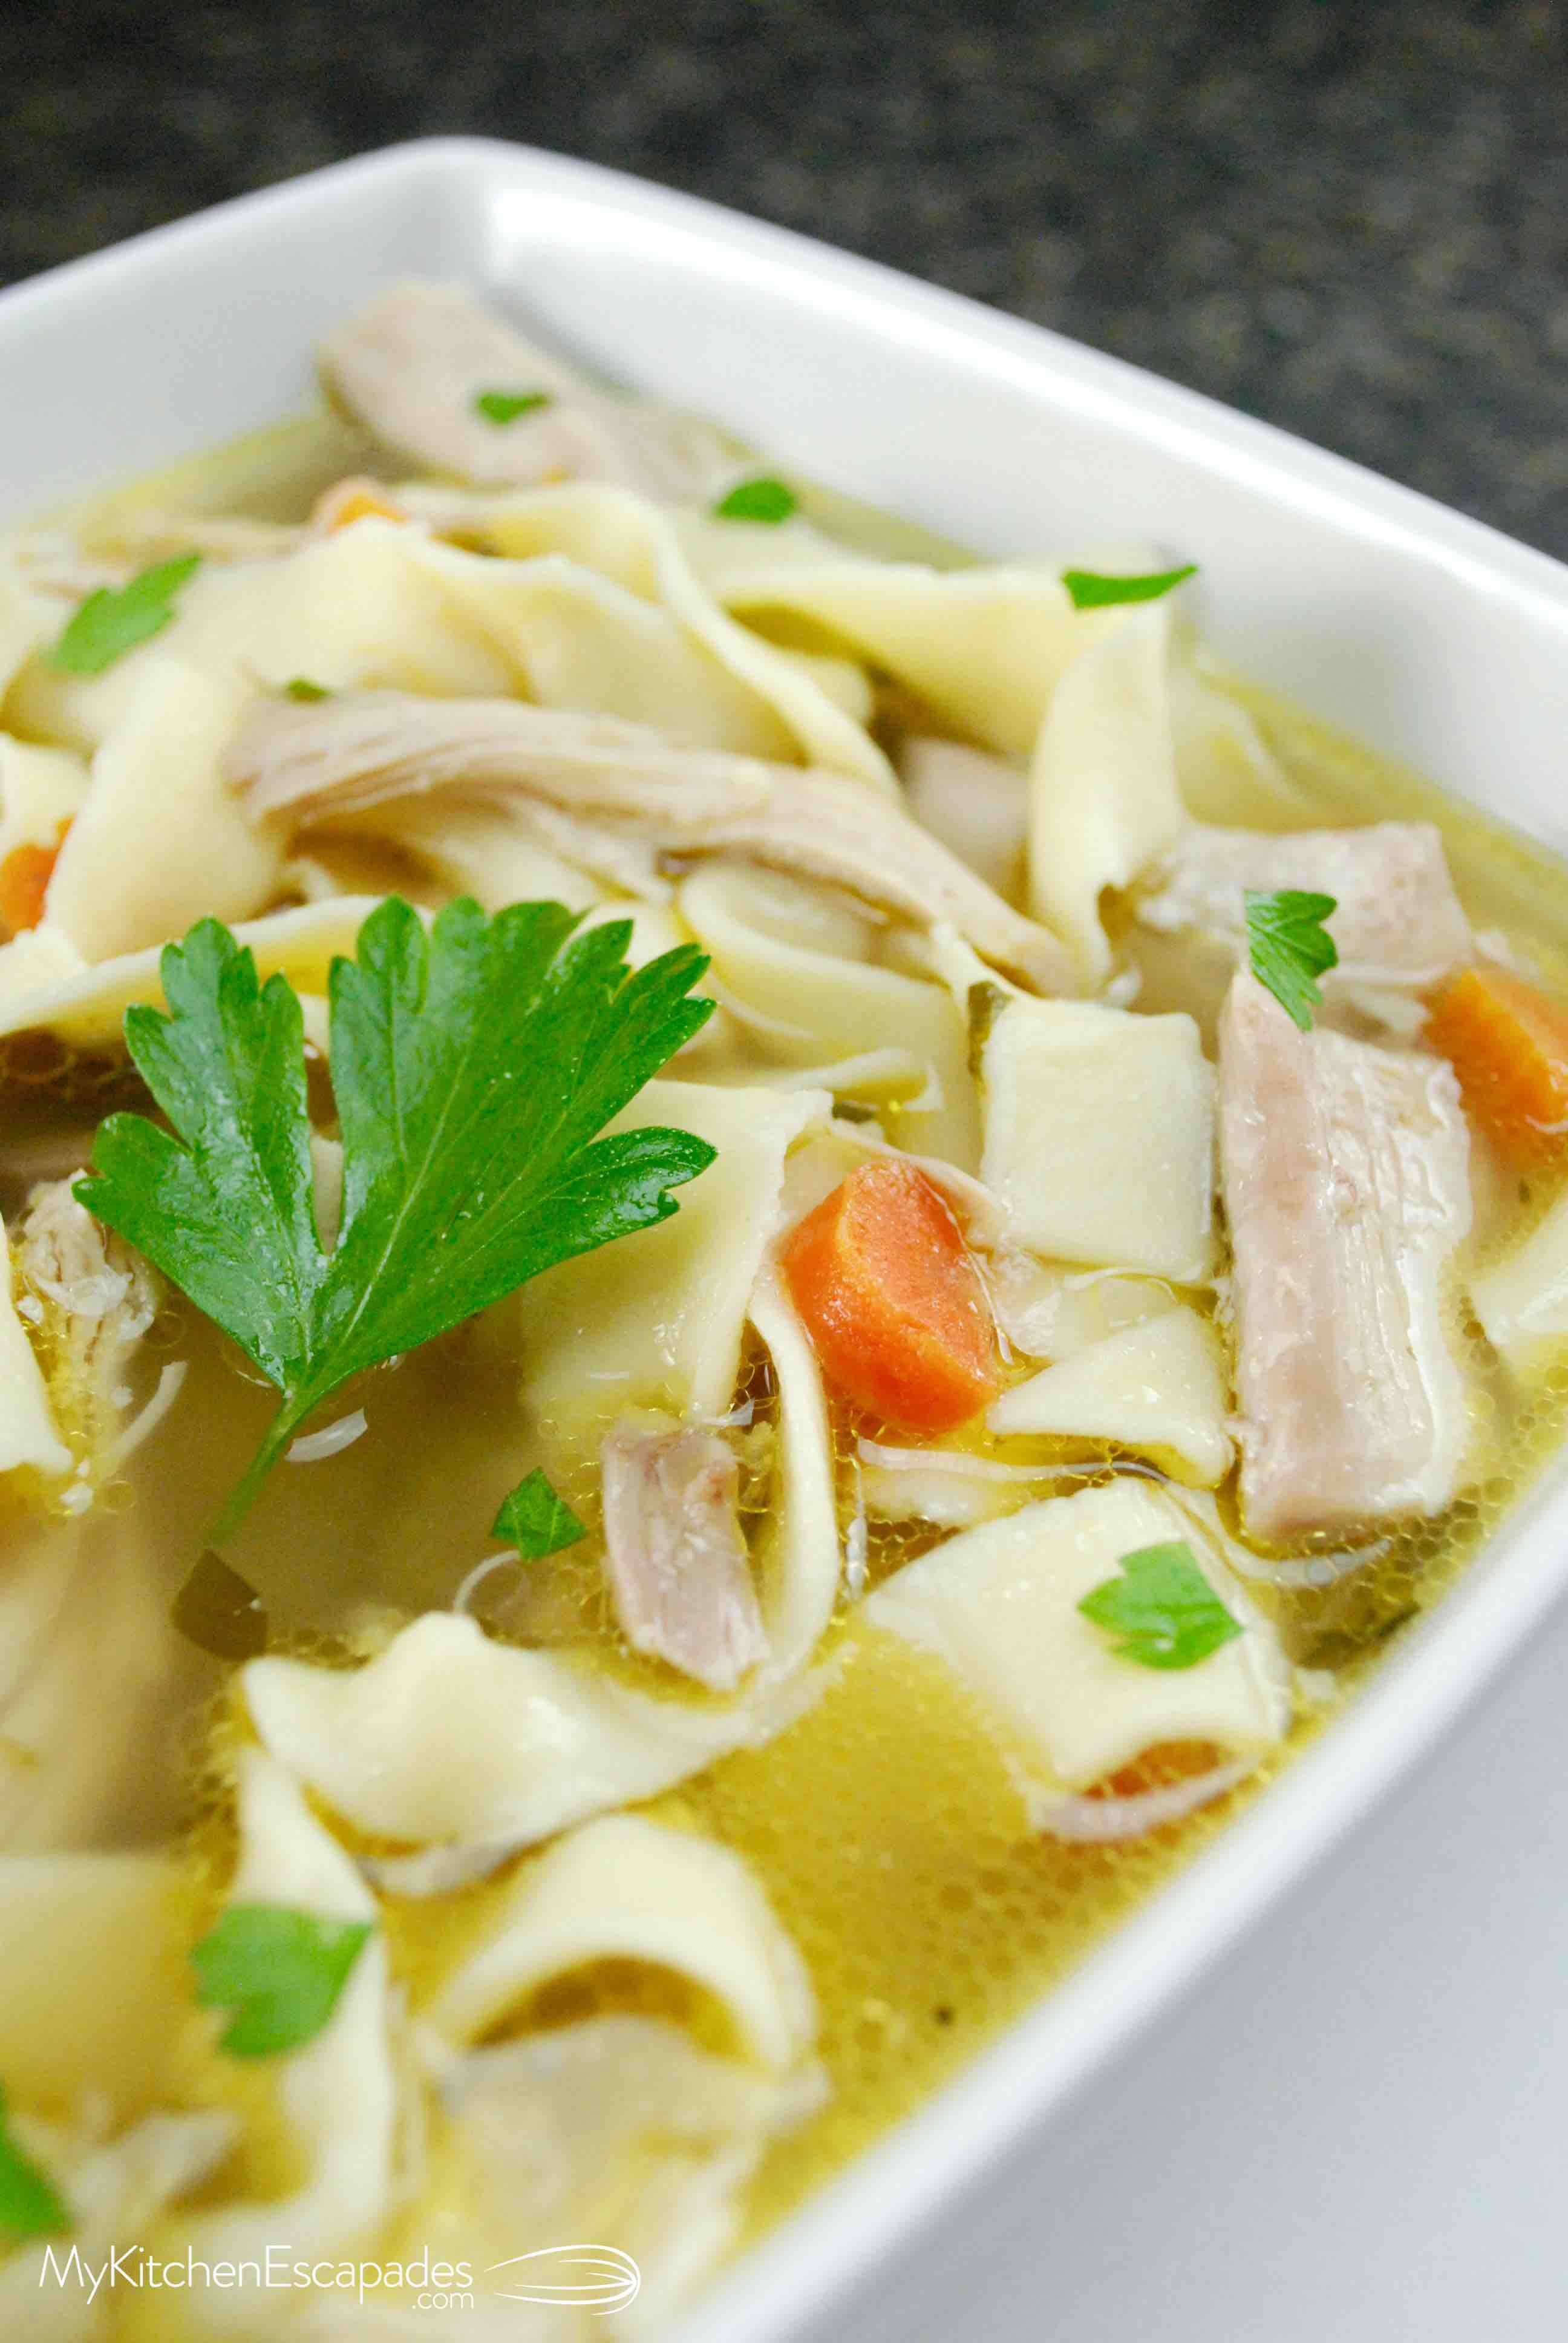 Homemade Chicken Noodle Soup With Homemade Noodles